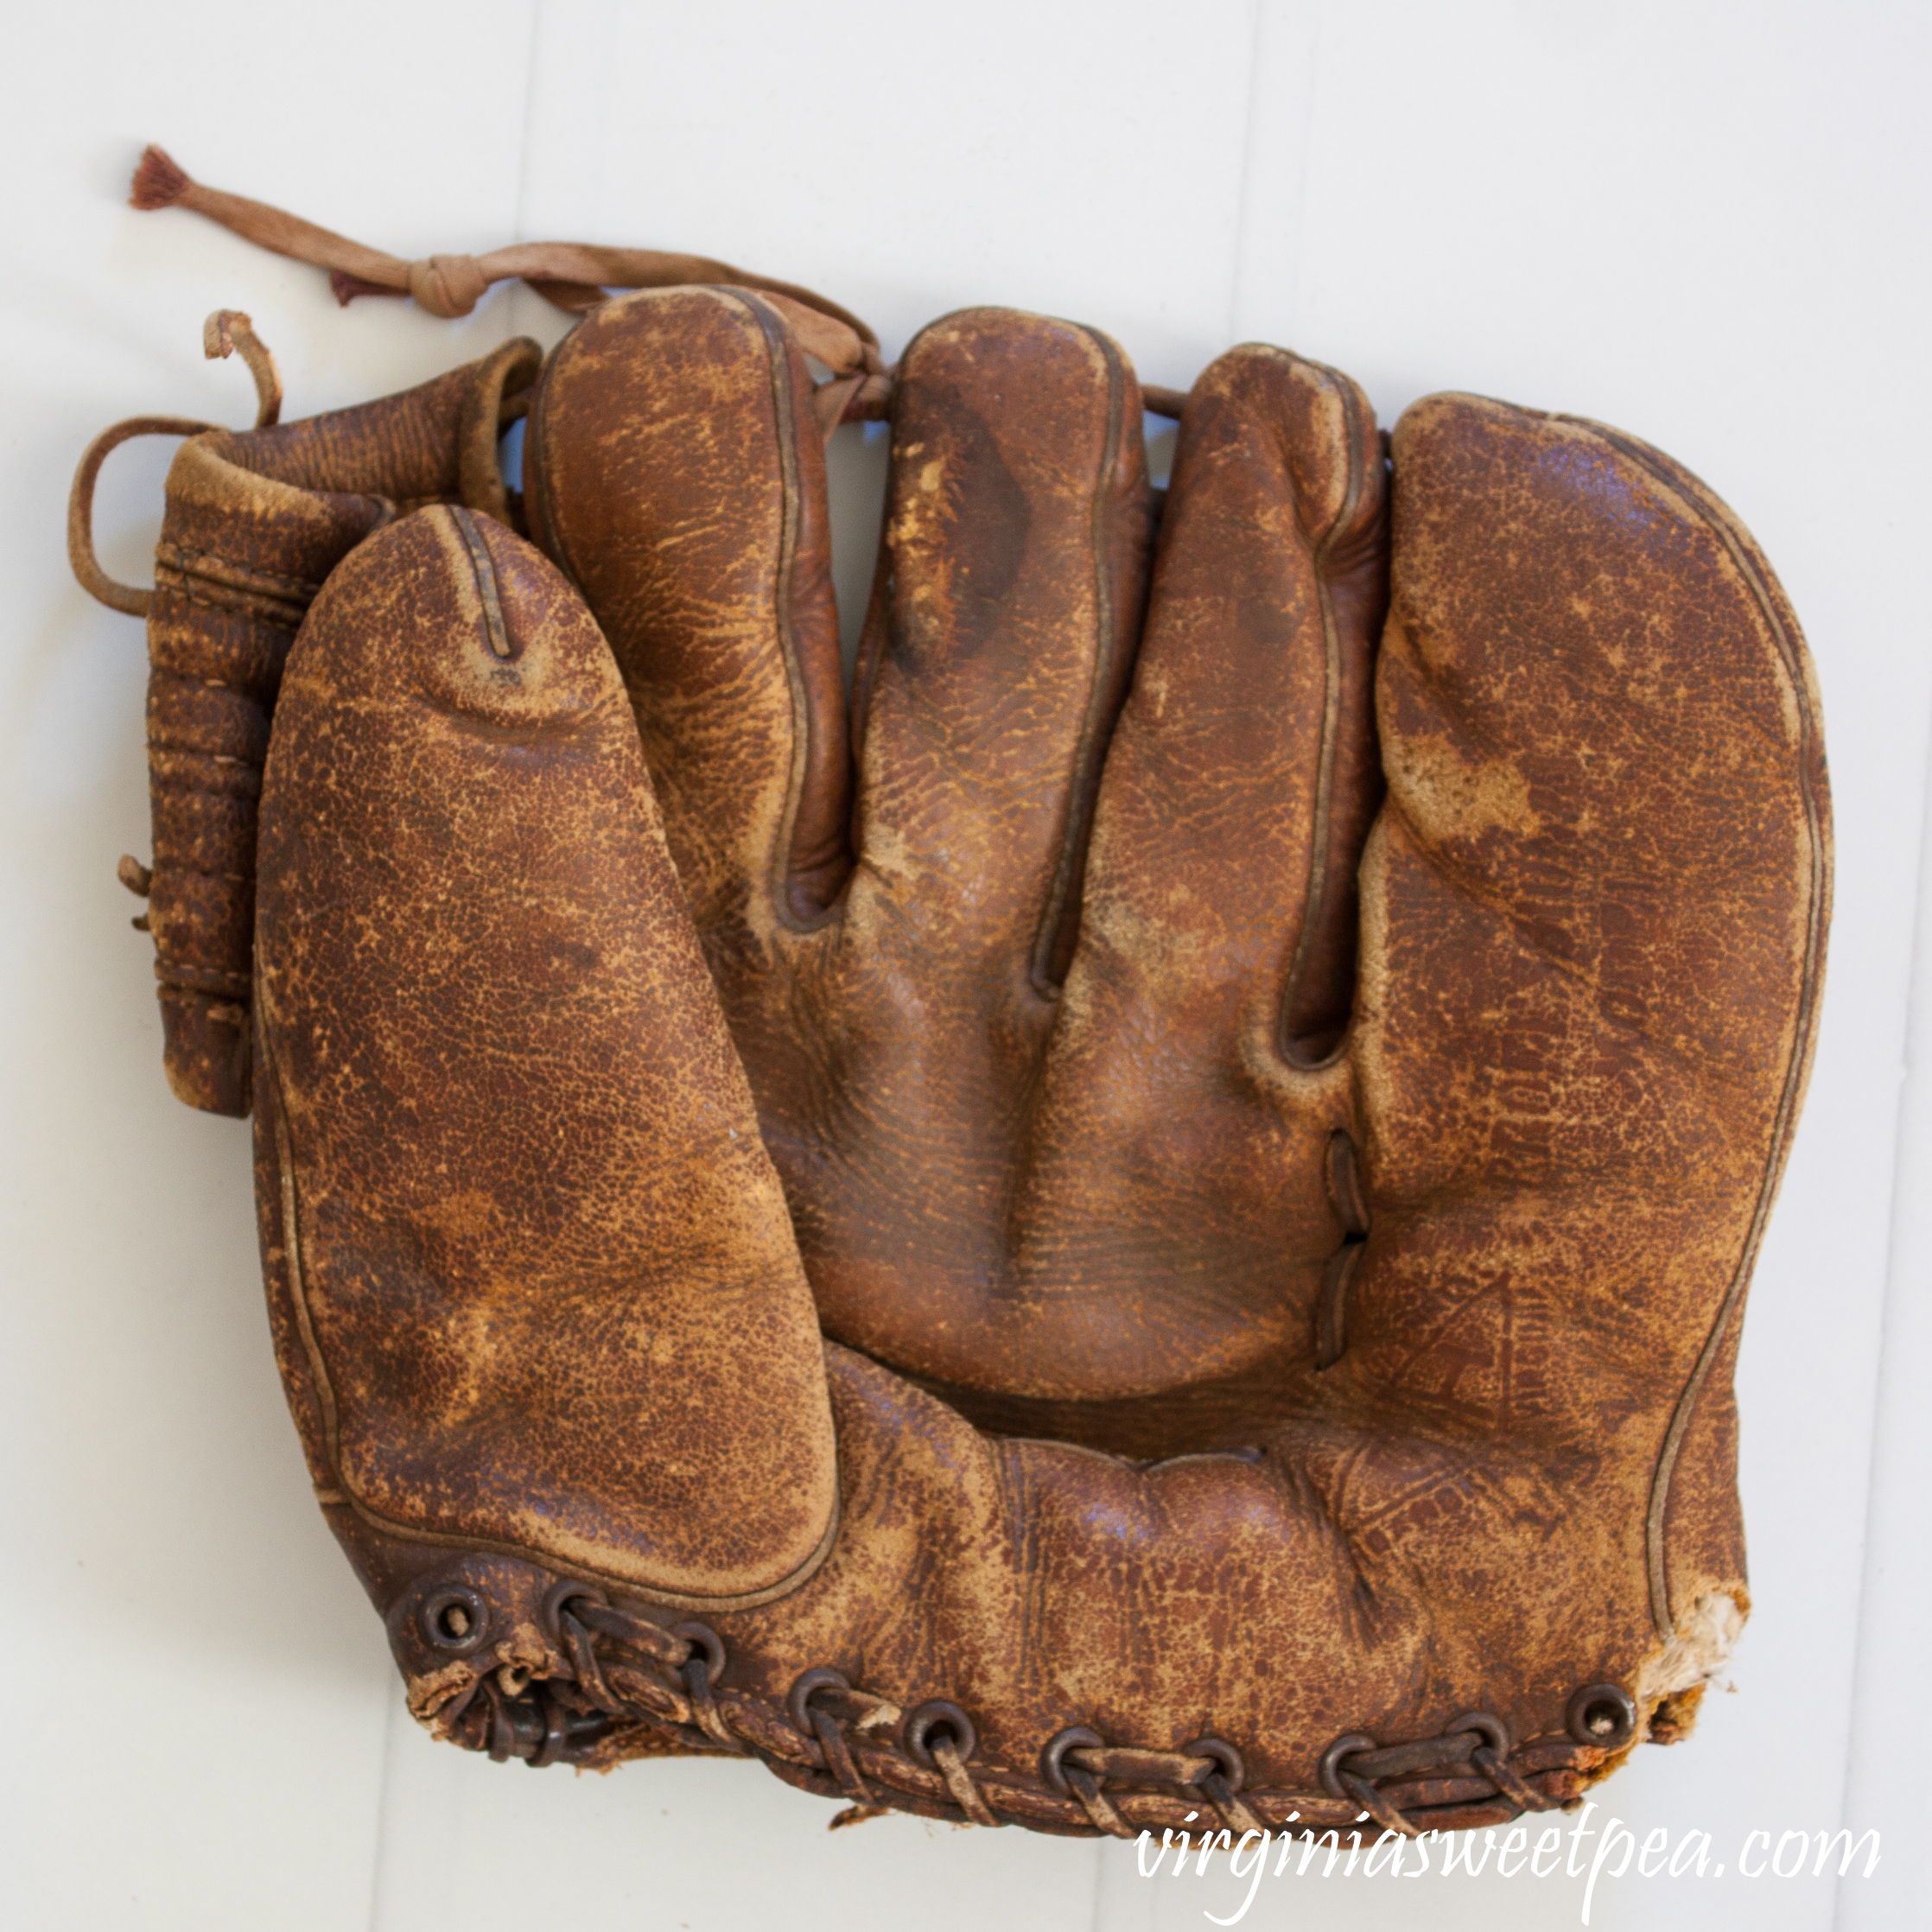 G-H made in Roanoke, Virginia vintage baseball glove most likely from the 1950's.